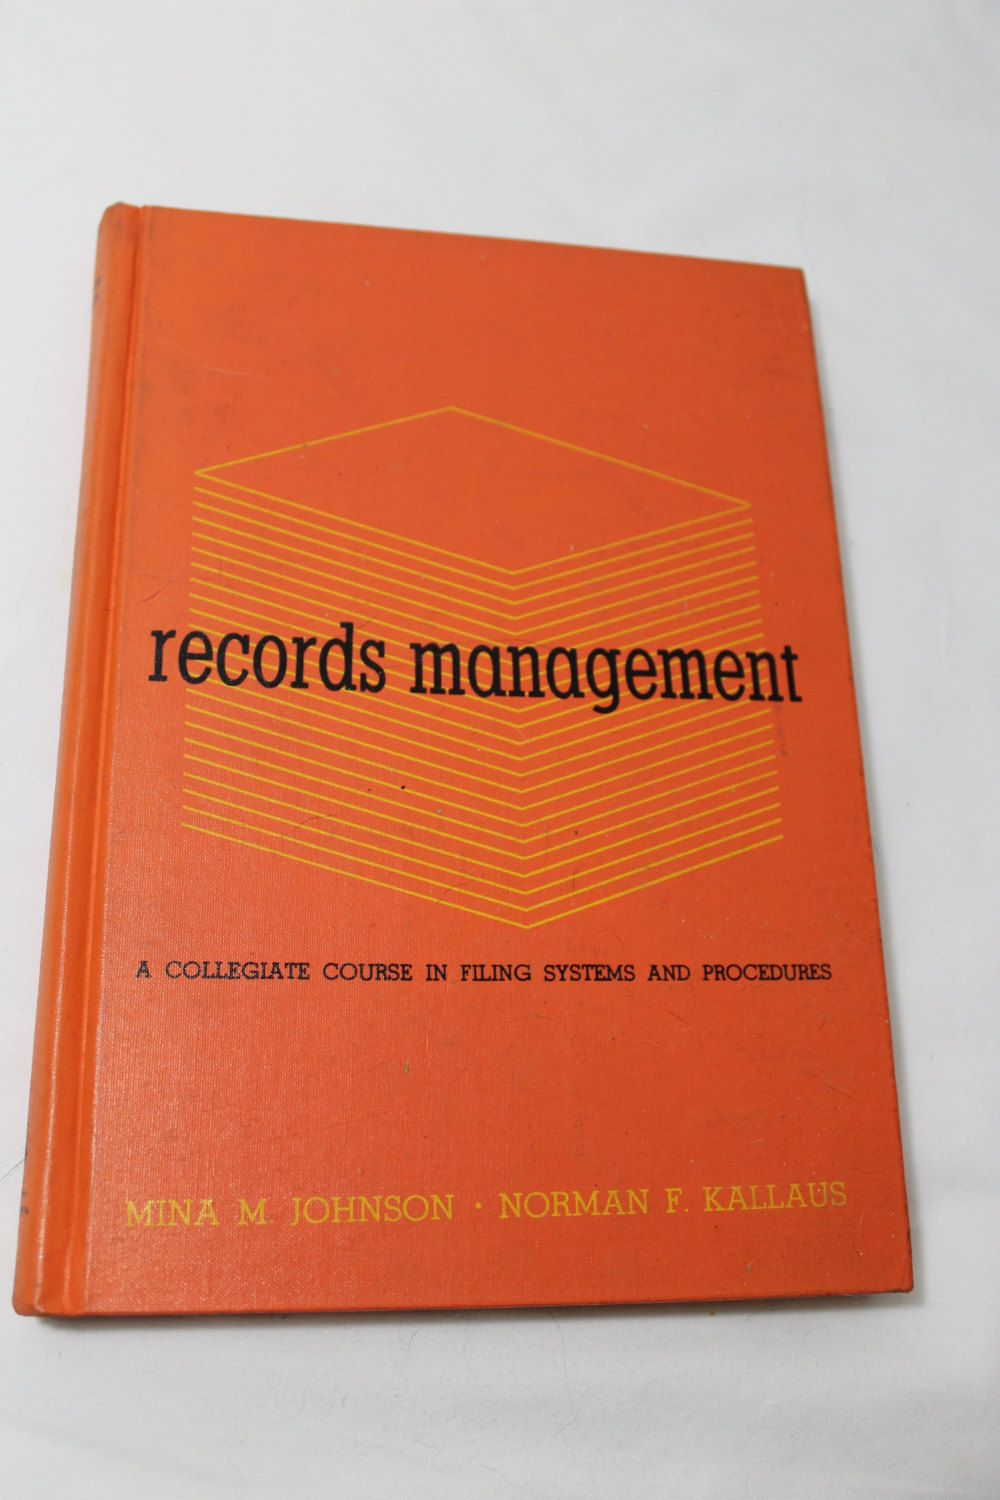 Records Management: A Collegiate Course in Filing Systems and Procedures 1967 Mina Johnson & Norman Kallaus (8.00 USD) by PamelaMurphyVintage